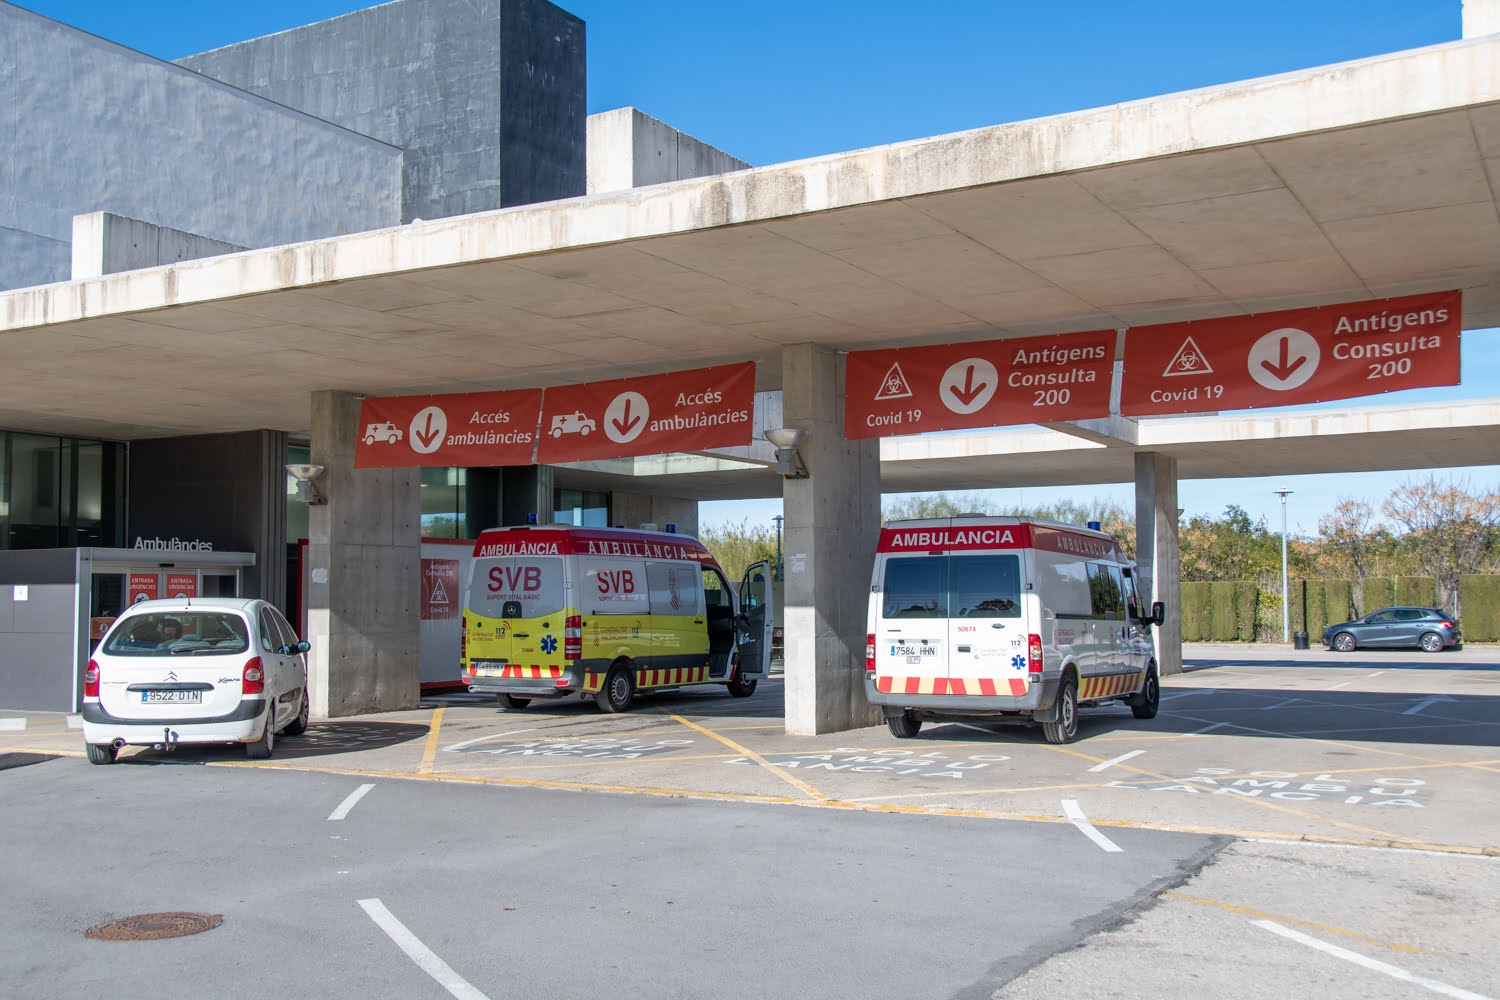 Ambulances in the emergency department of the Dénia hospital